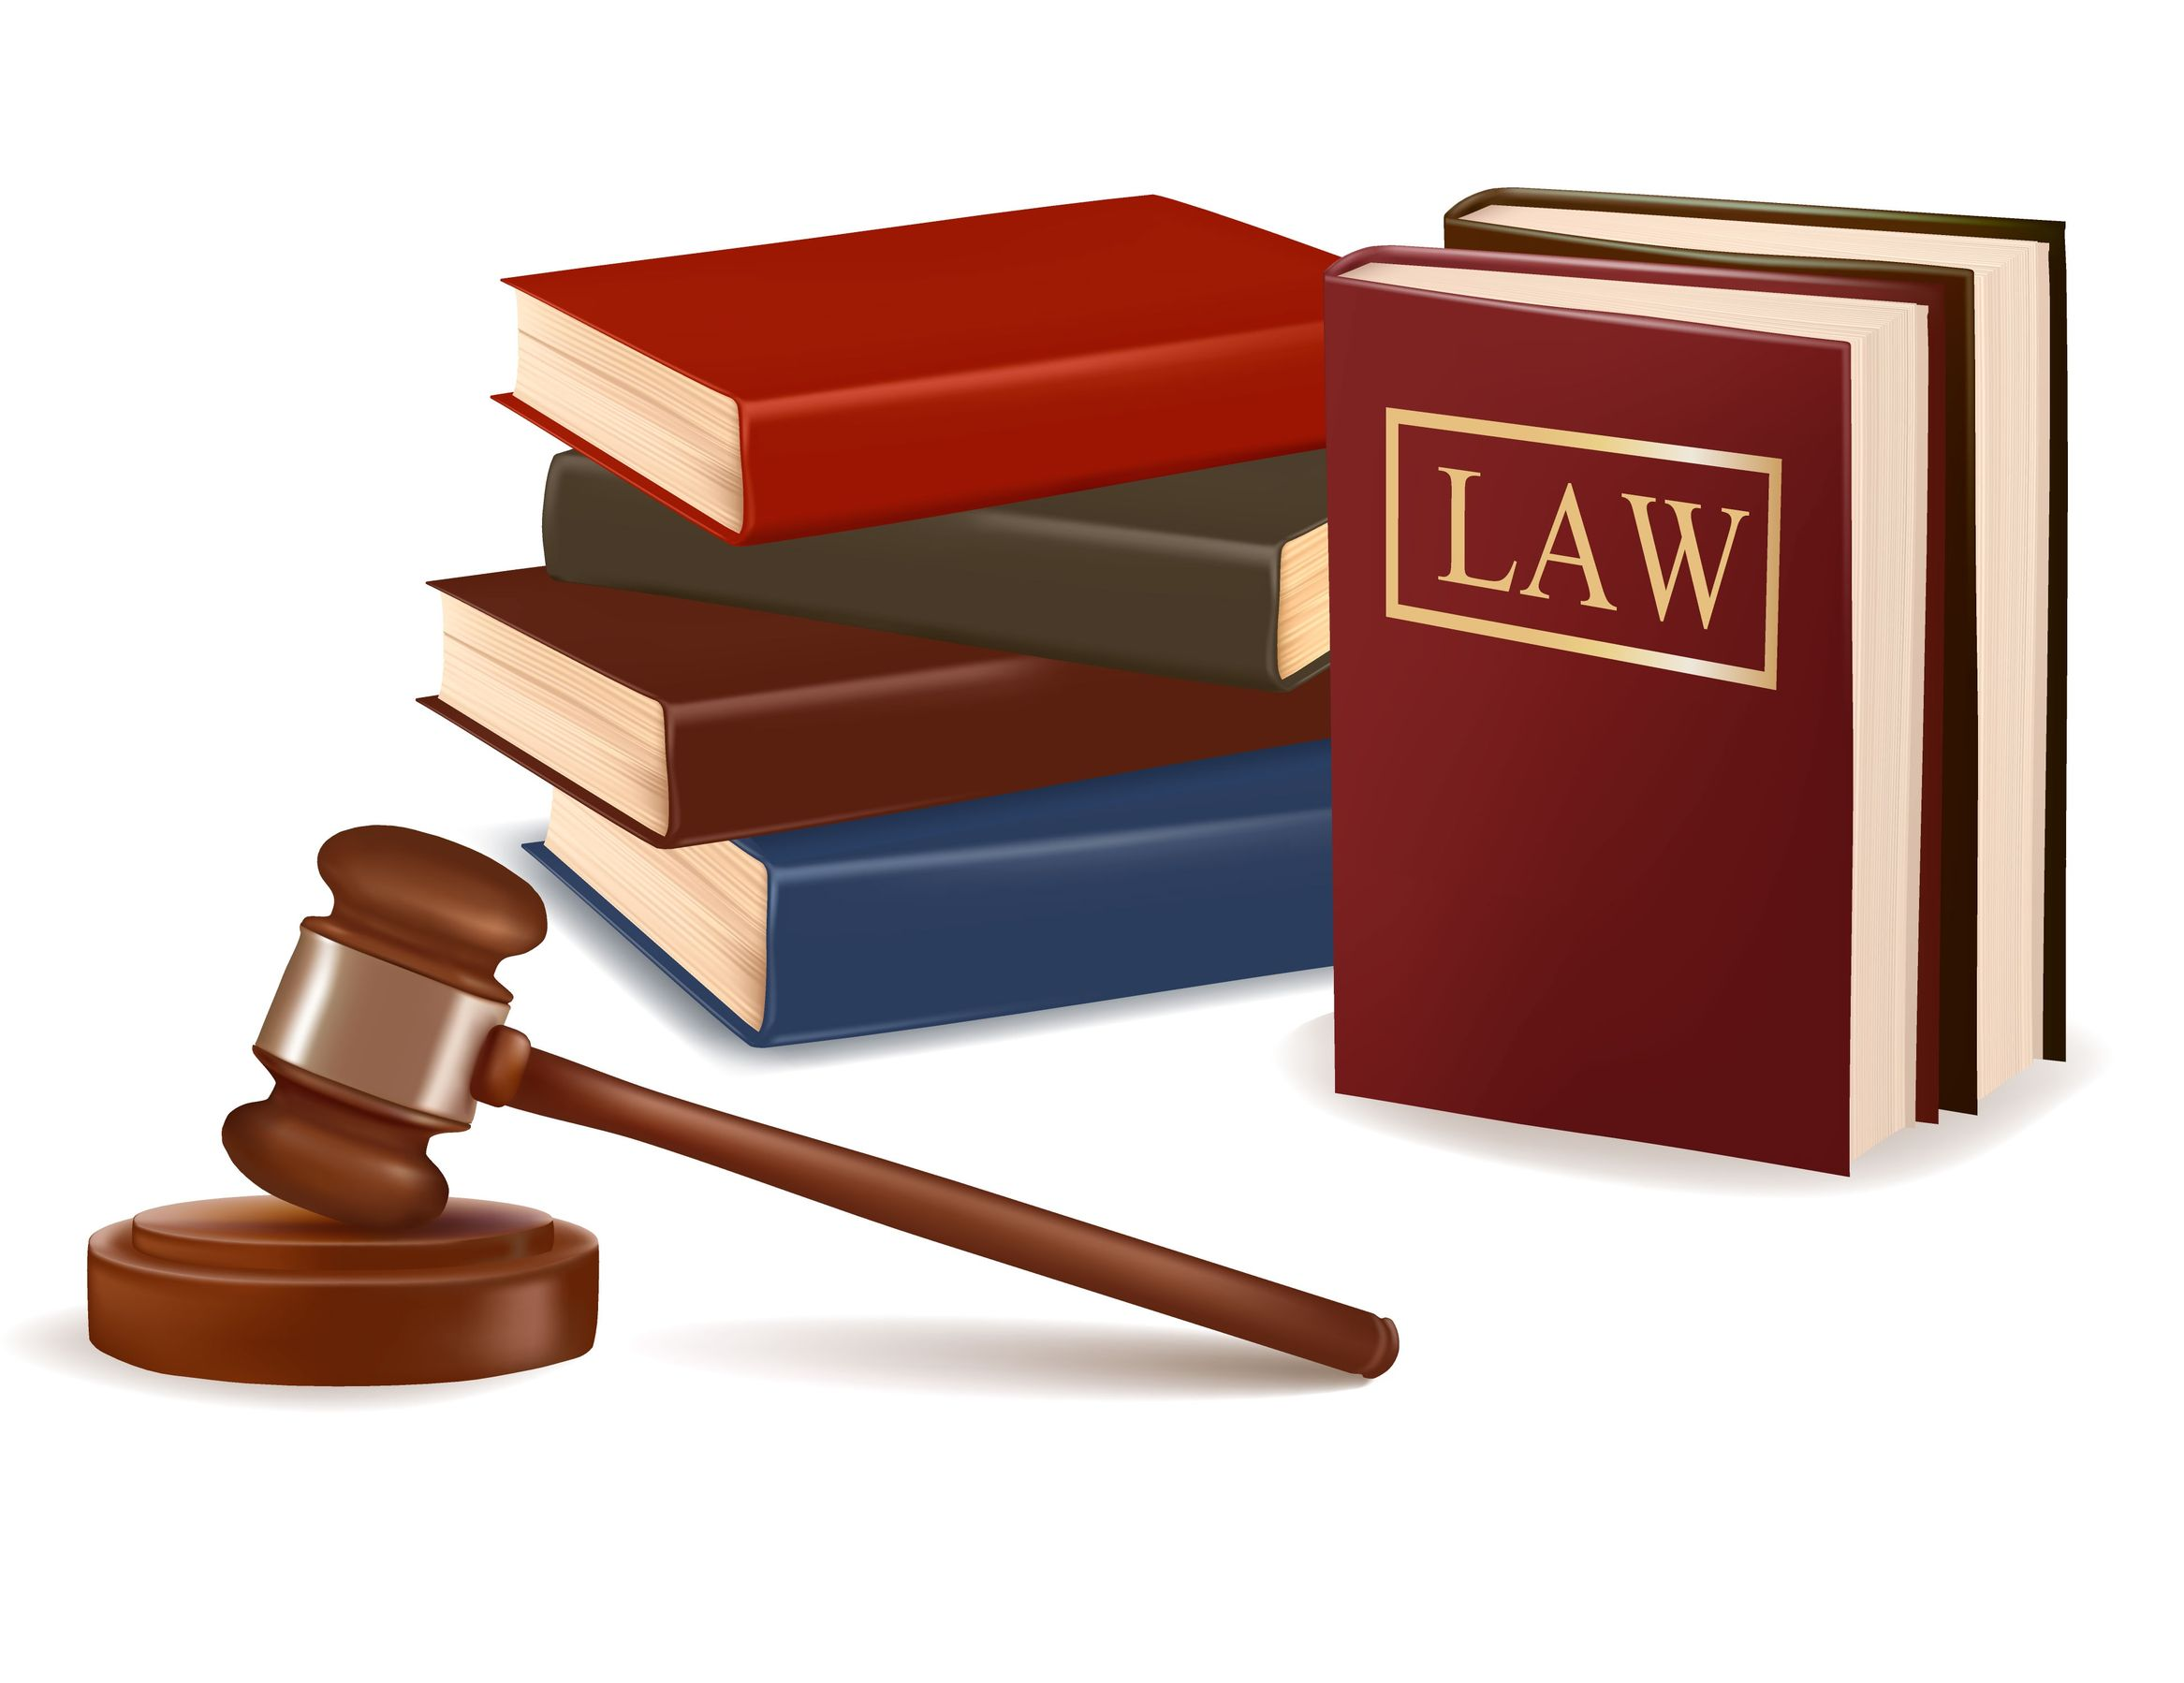 Free Law Book Cliparts, Download Free Clip Art, Free Clip Art on.